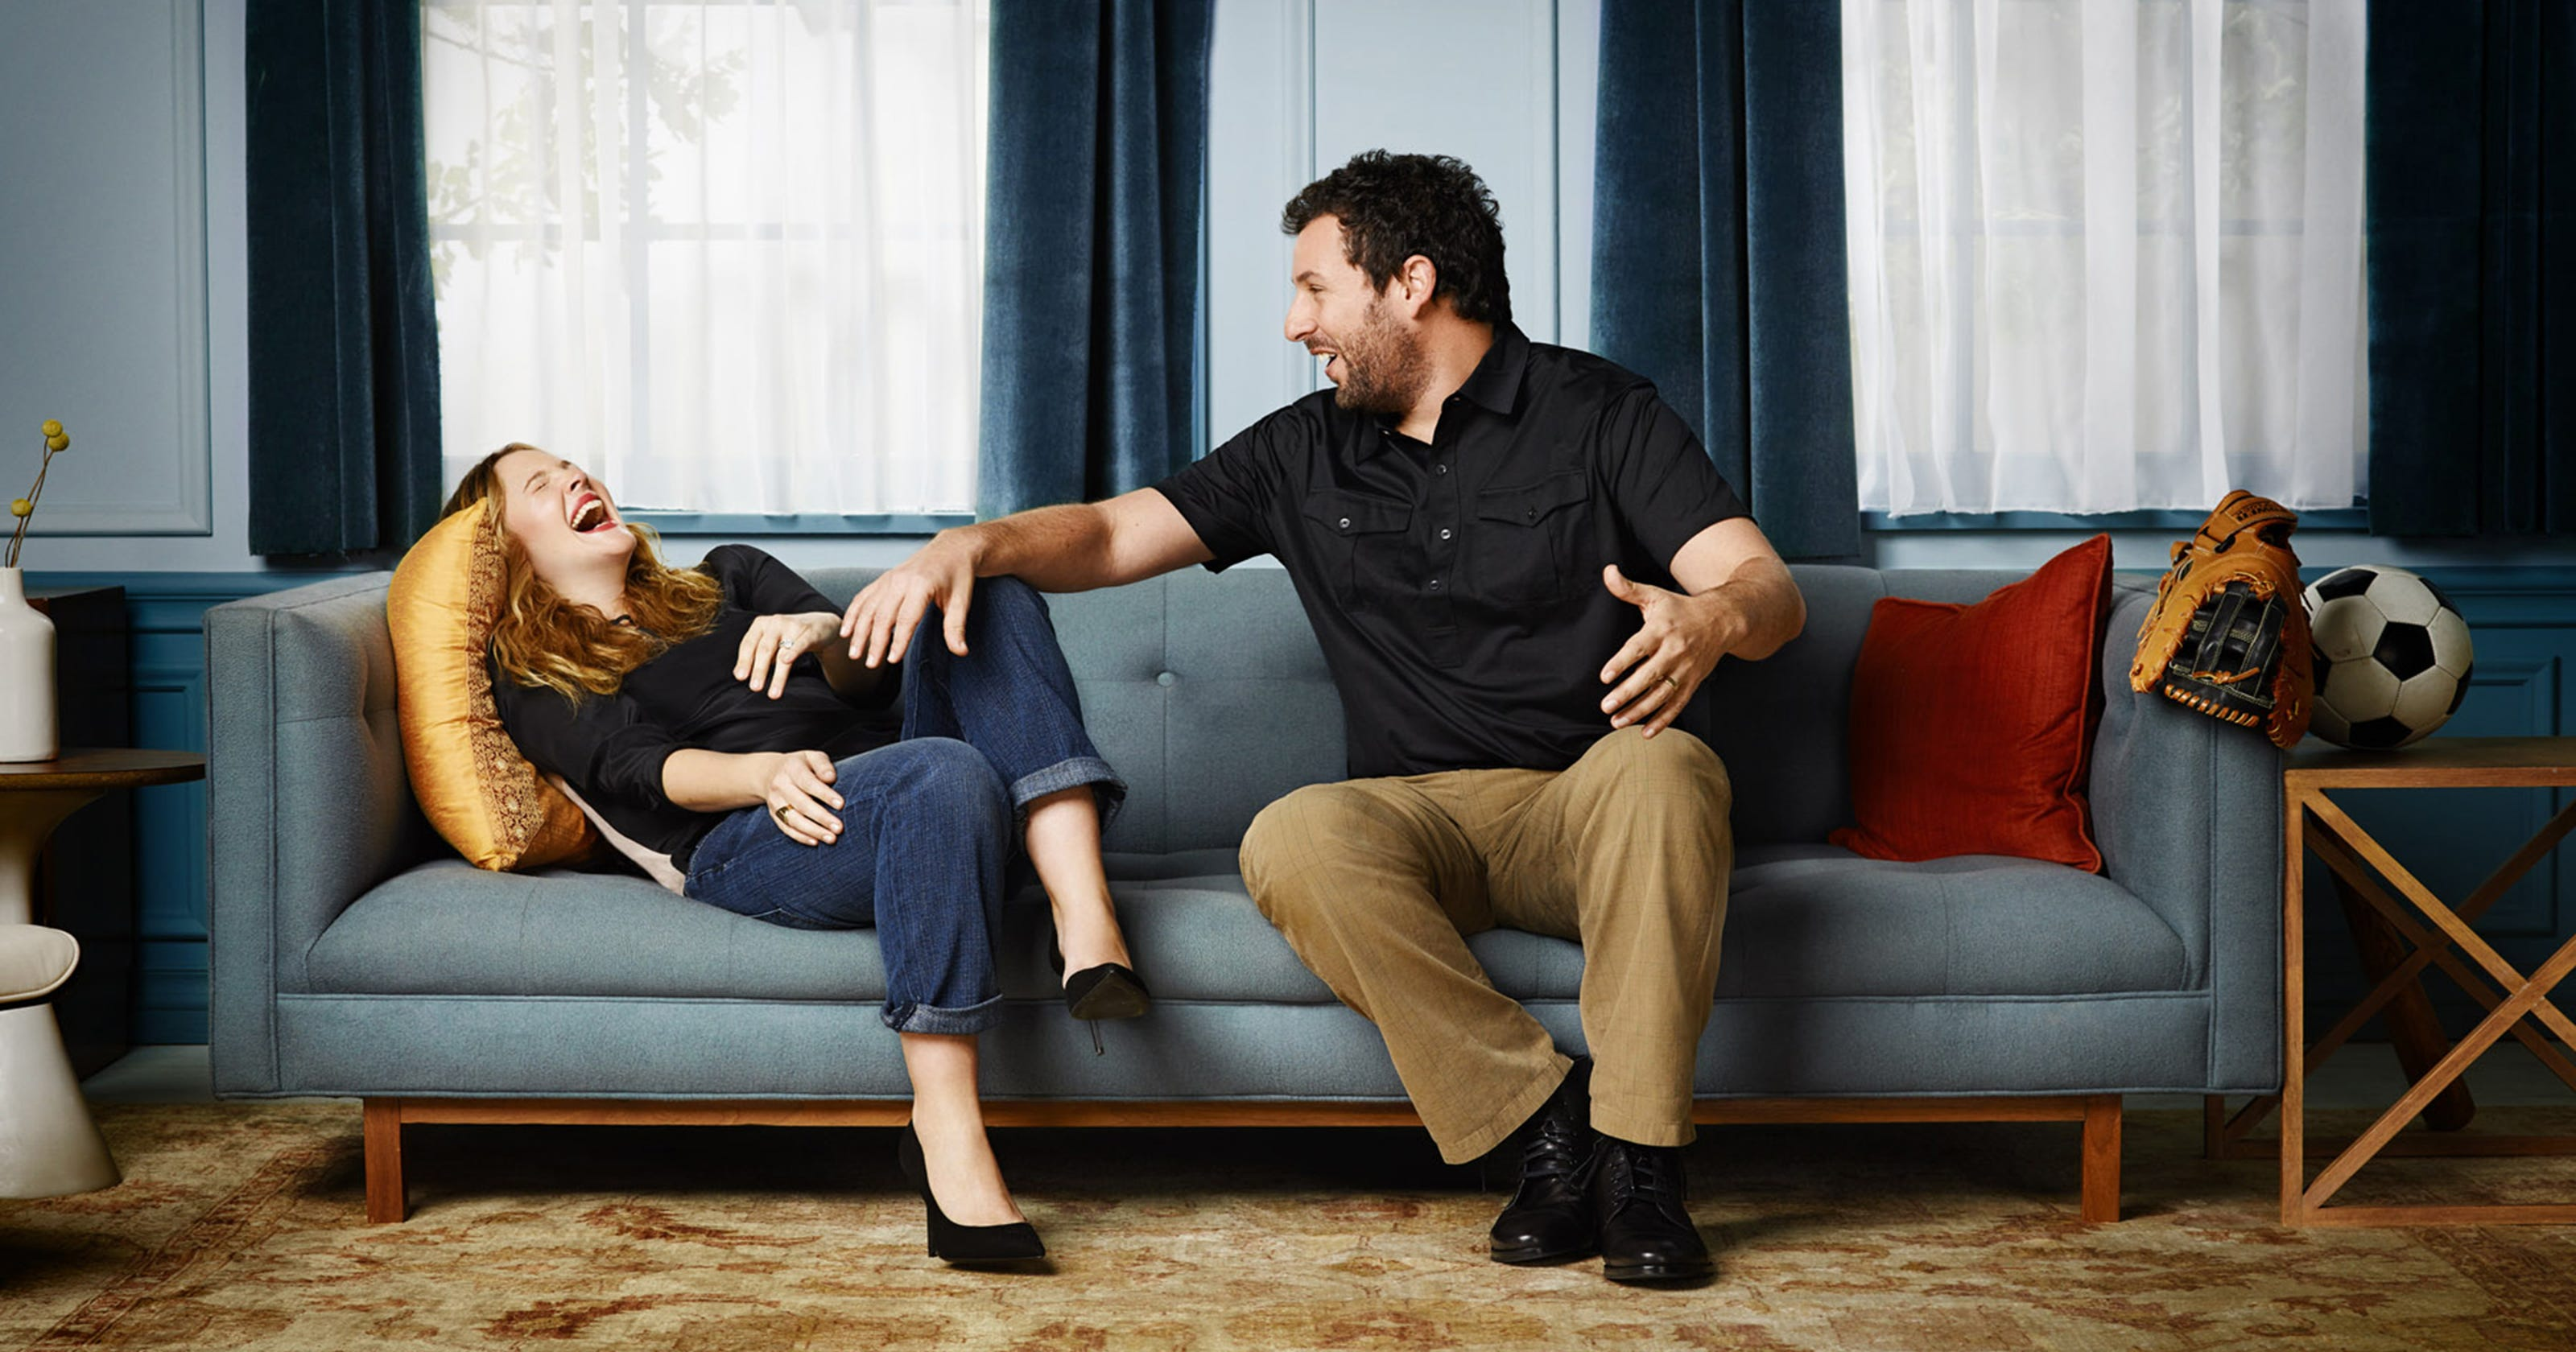 The key to the Sandler, Barrymore connection? Trust, respect